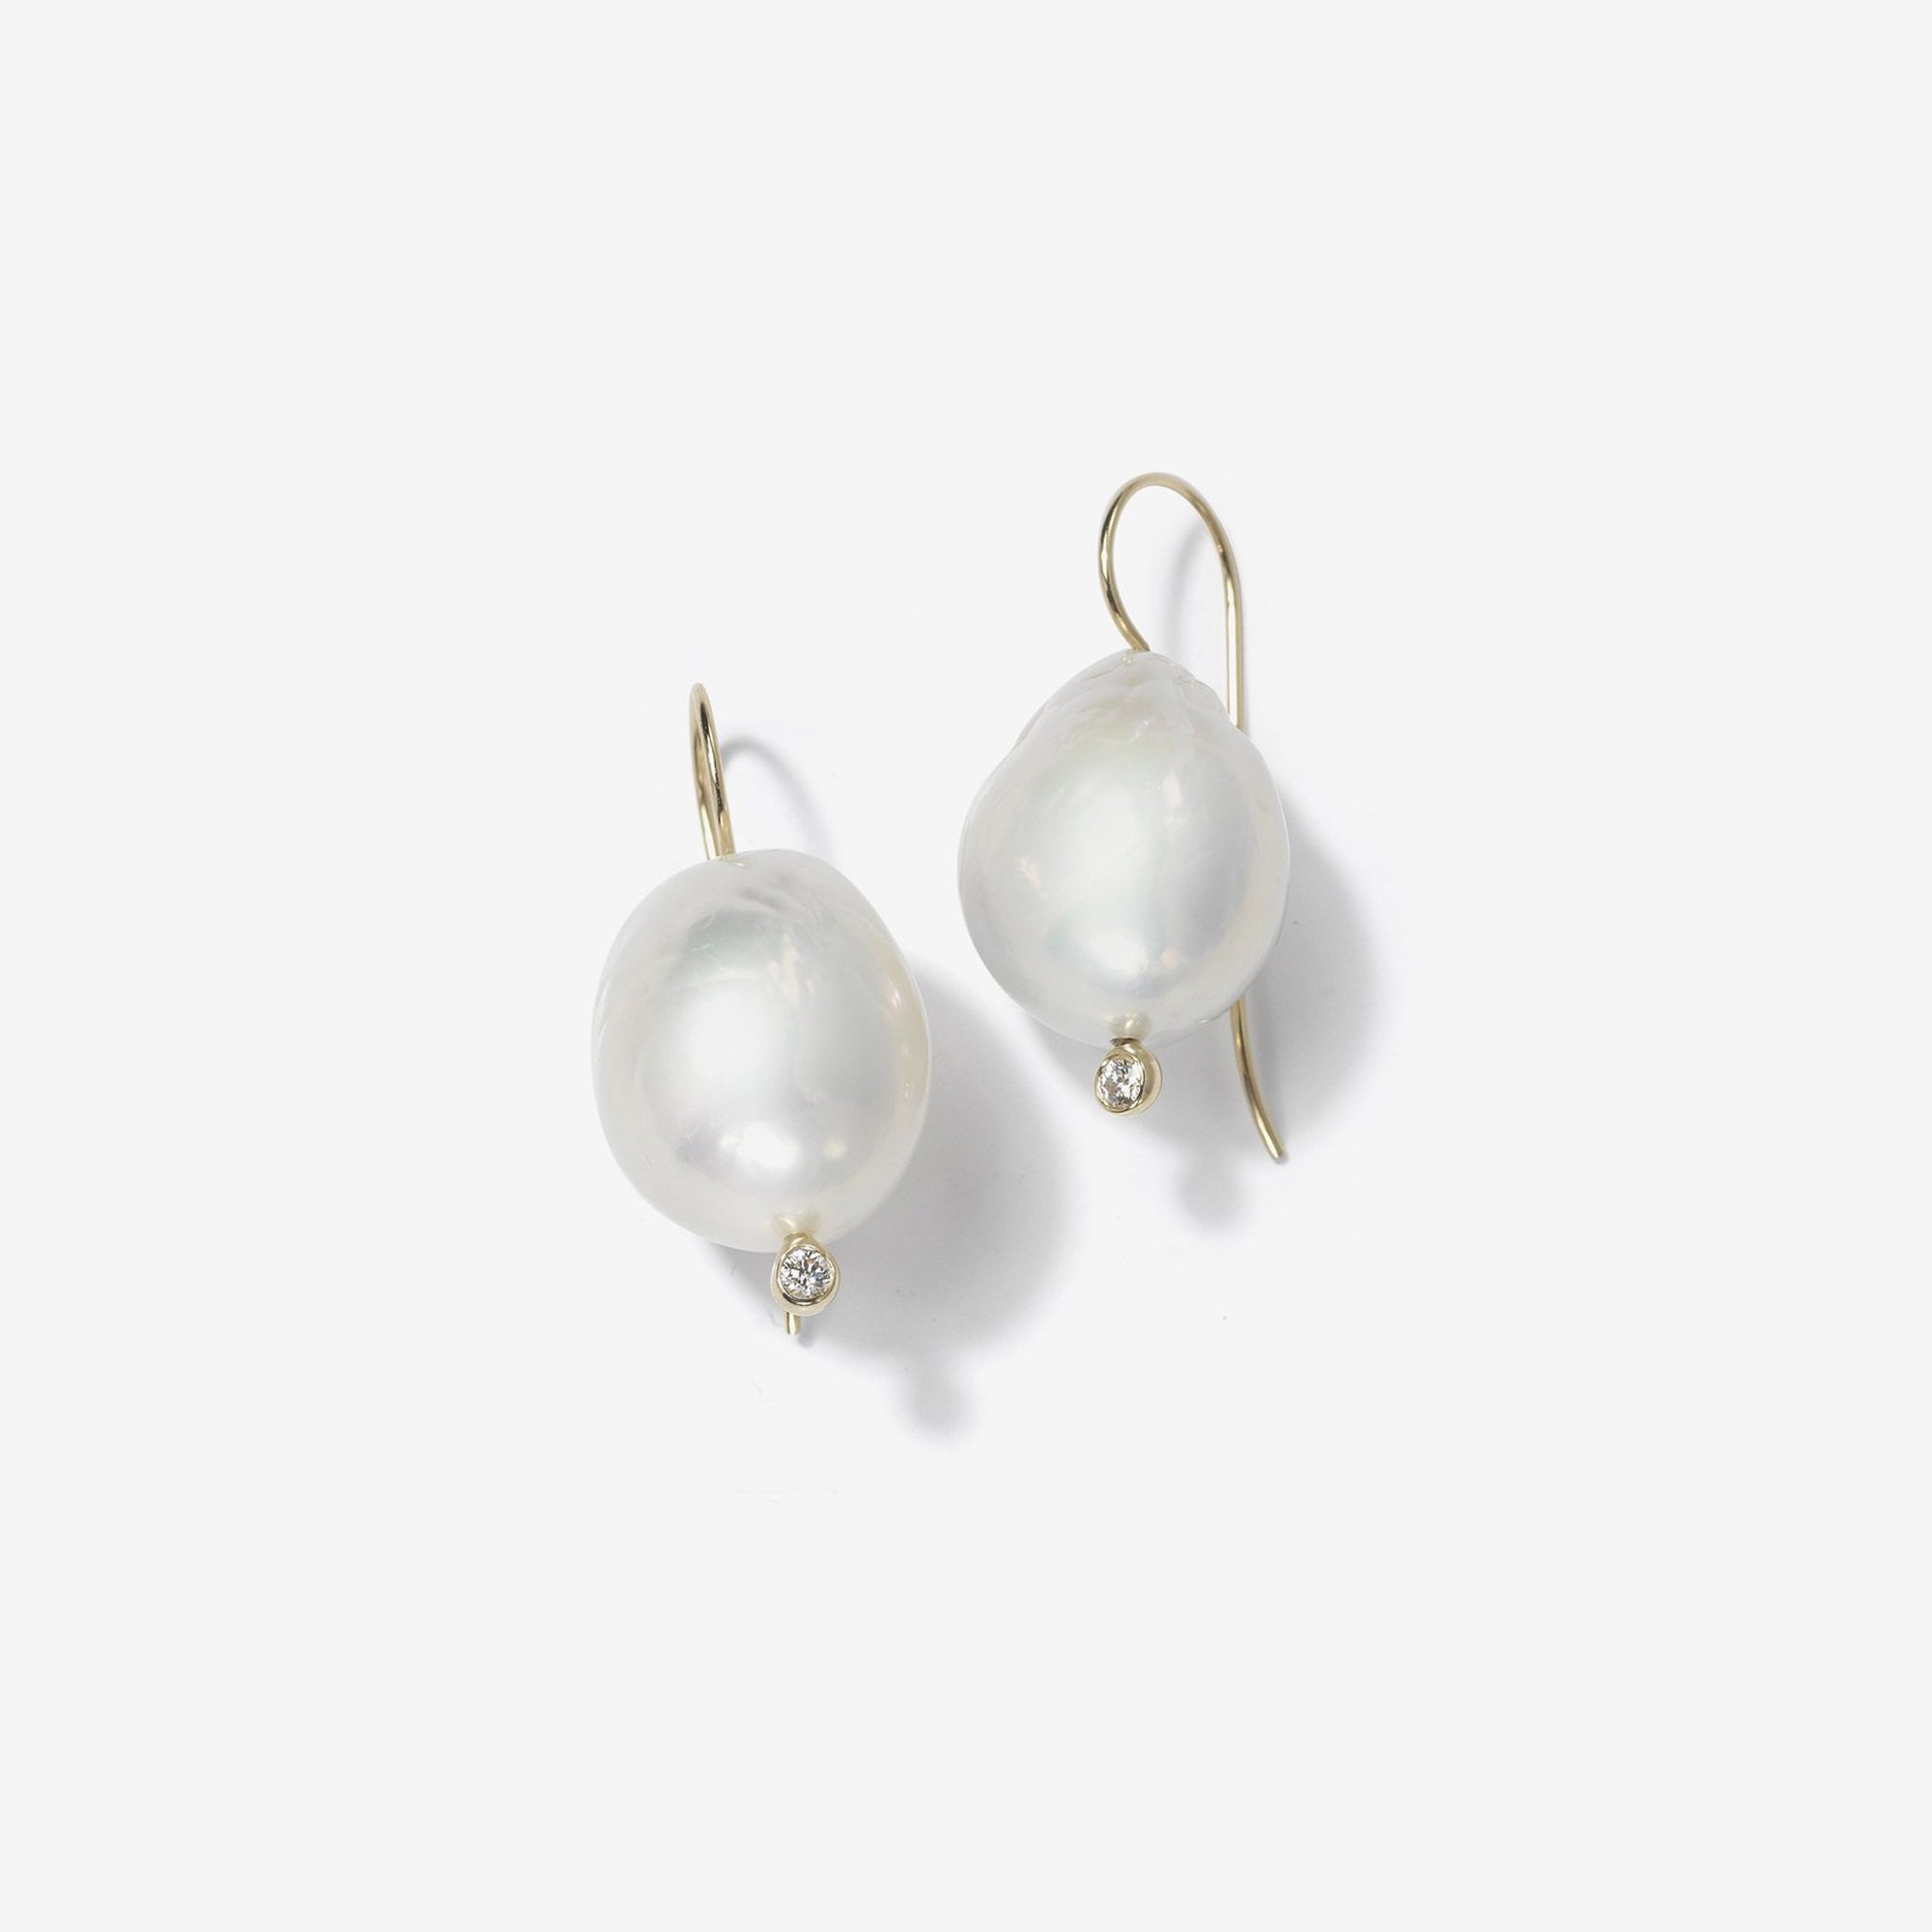 French wire Large White Pearl and Diamond Earring